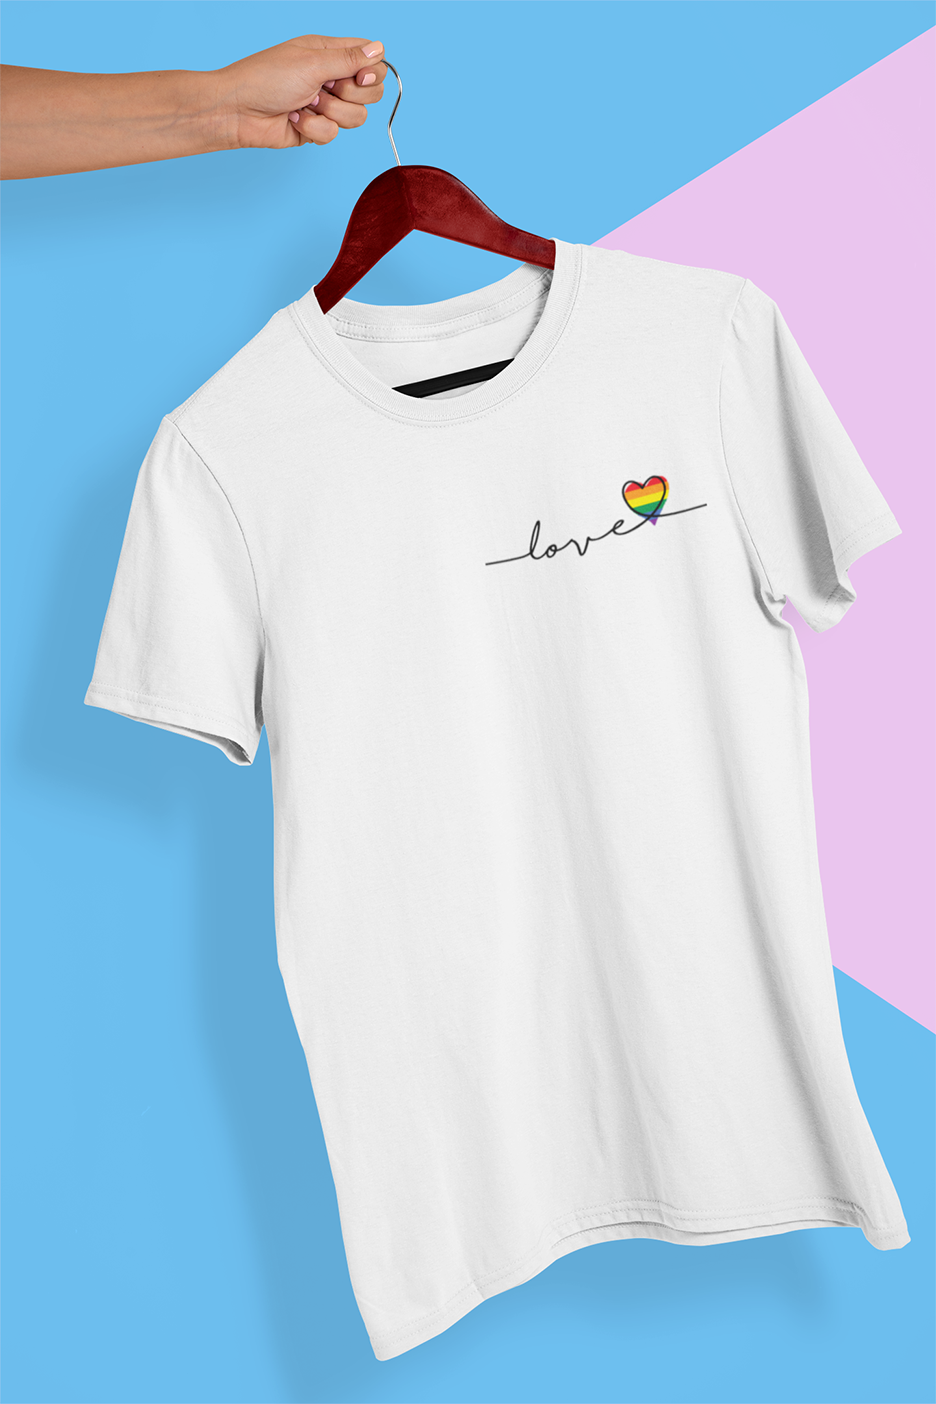 Love T-shirt , LGBT , Pride T-shirt - Urbantshirts.co.uk